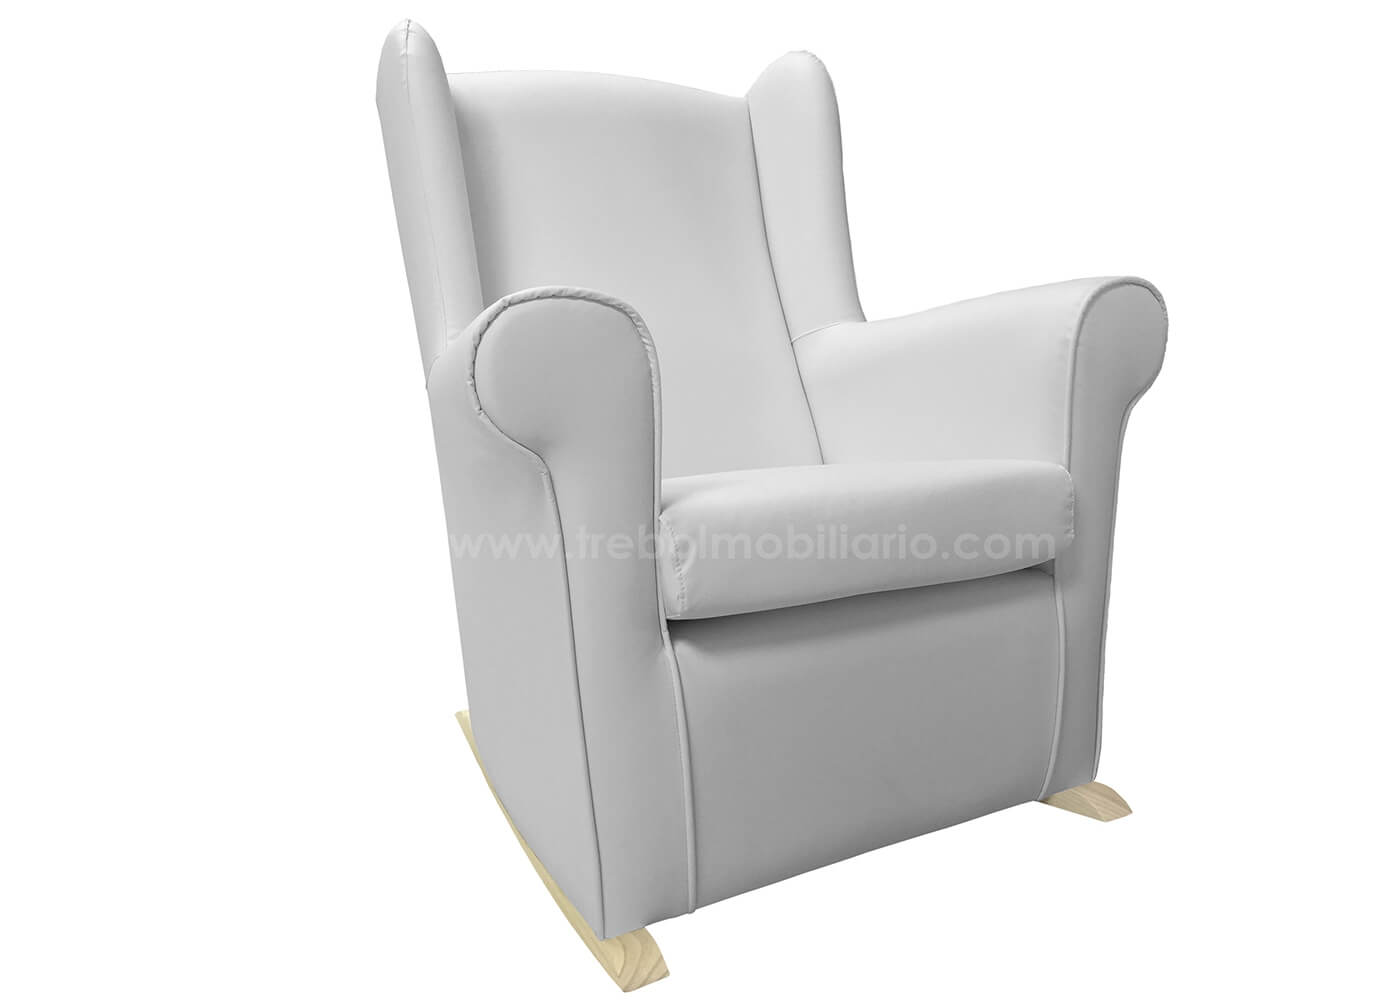 chaise allaitement affordable fauteuil d allaitement gliding chair quax source chaise a bascule. Black Bedroom Furniture Sets. Home Design Ideas